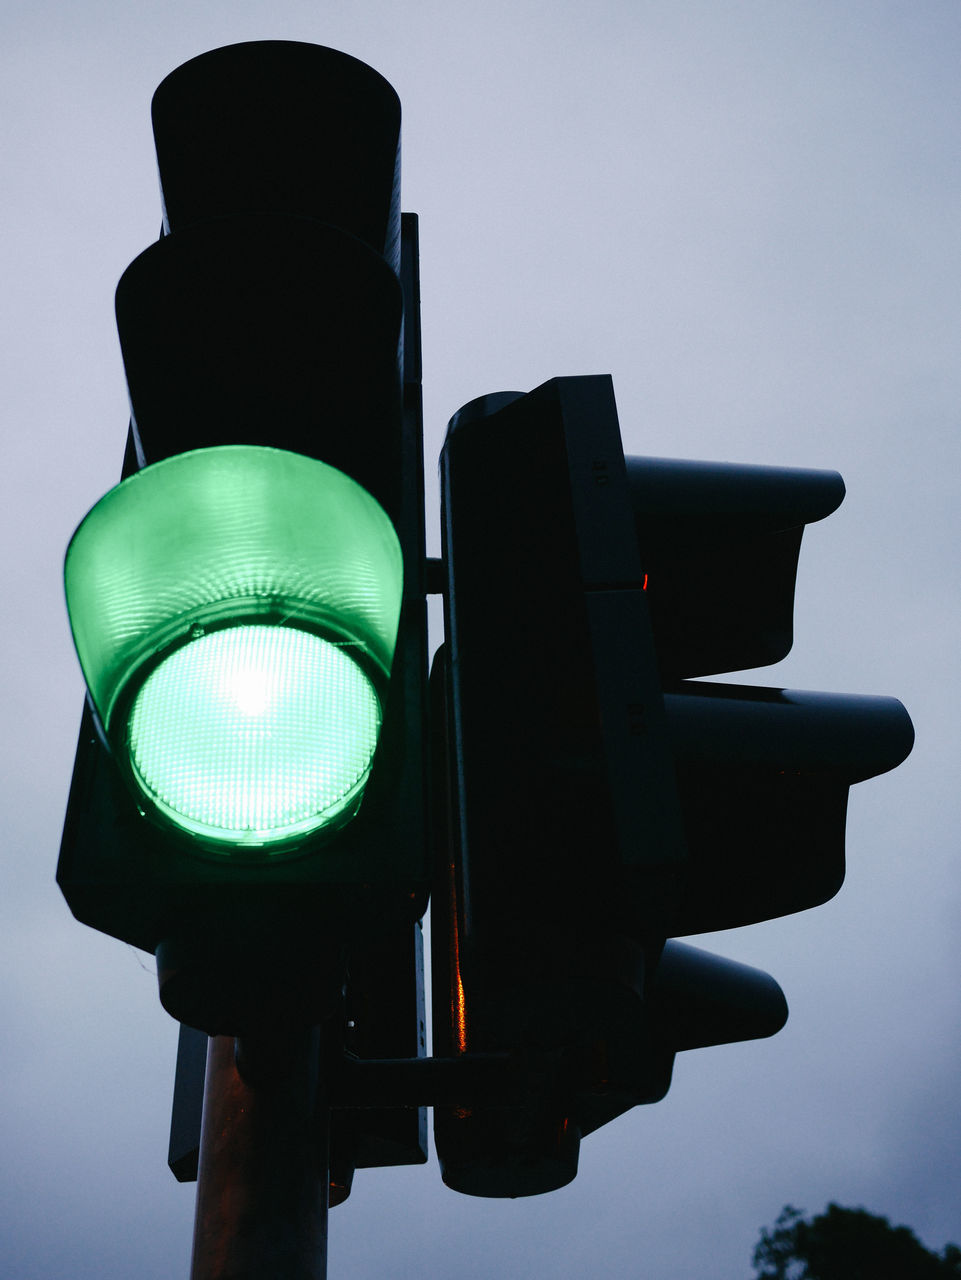 Low Angle View Of Illuminated Green Road Signal Against Sky